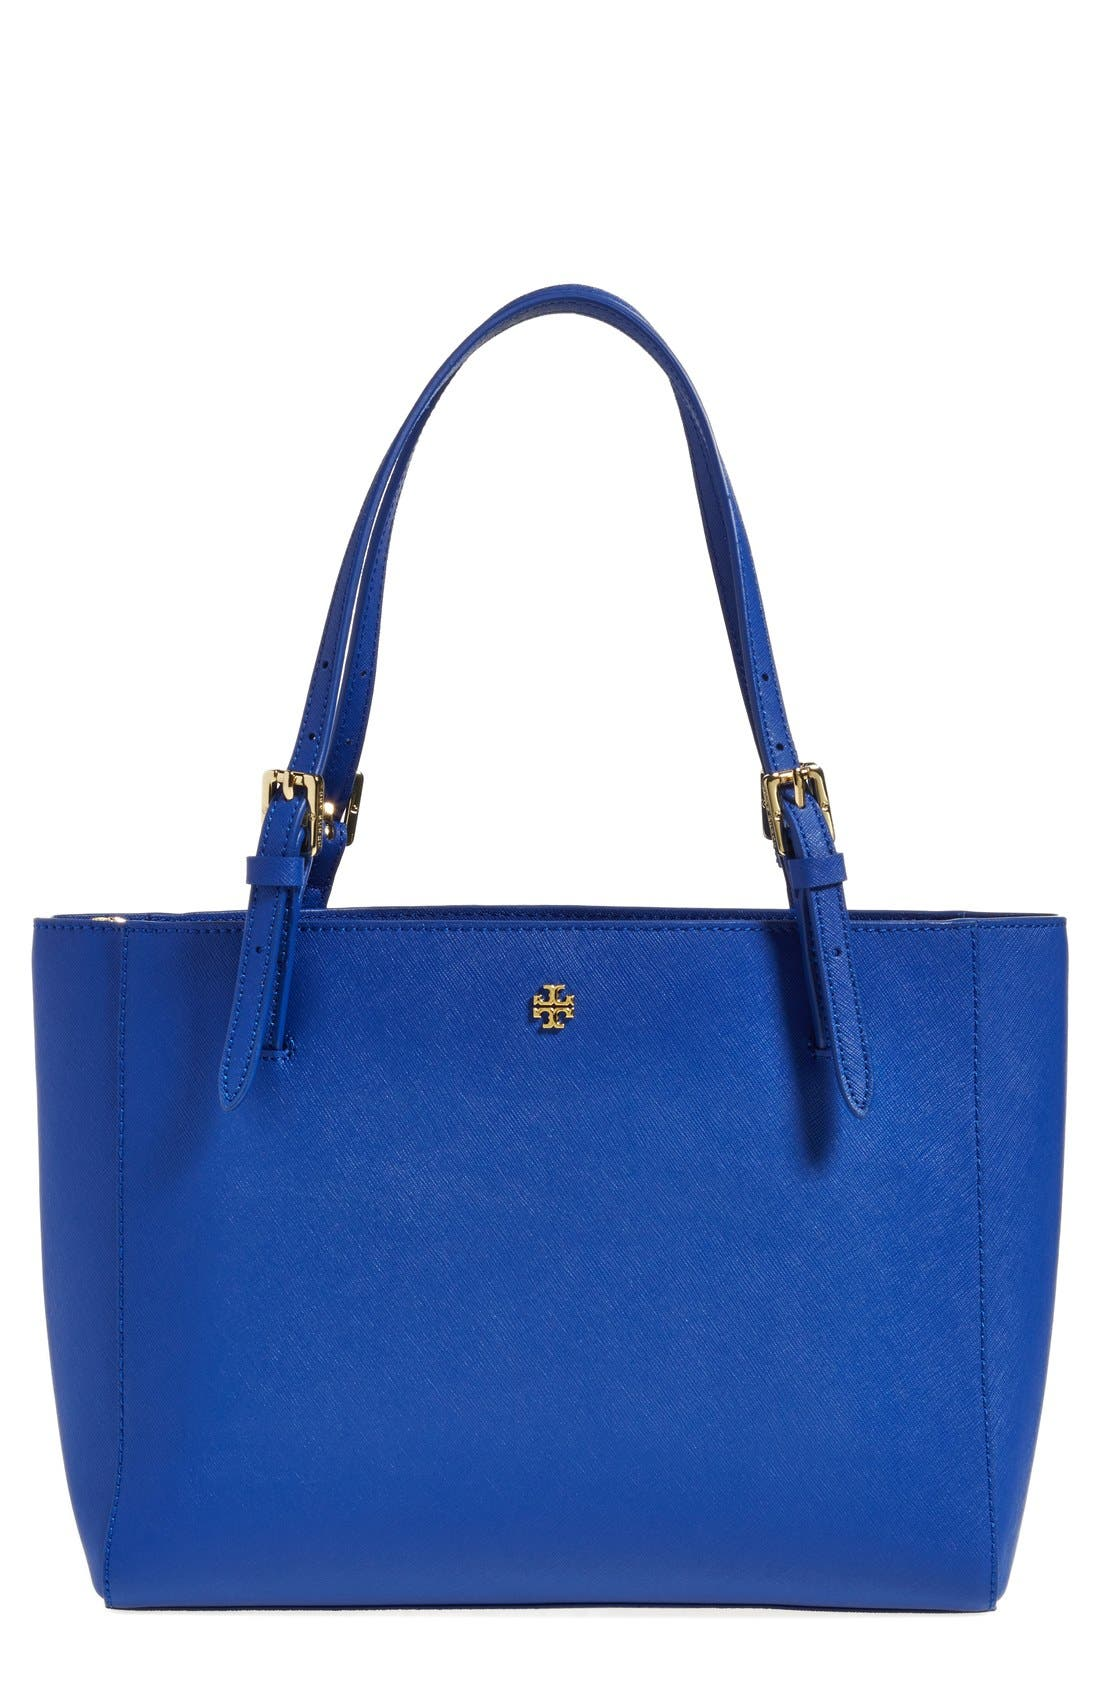 'Small York' Saffiano Leather Buckle Tote,                             Main thumbnail 11, color,